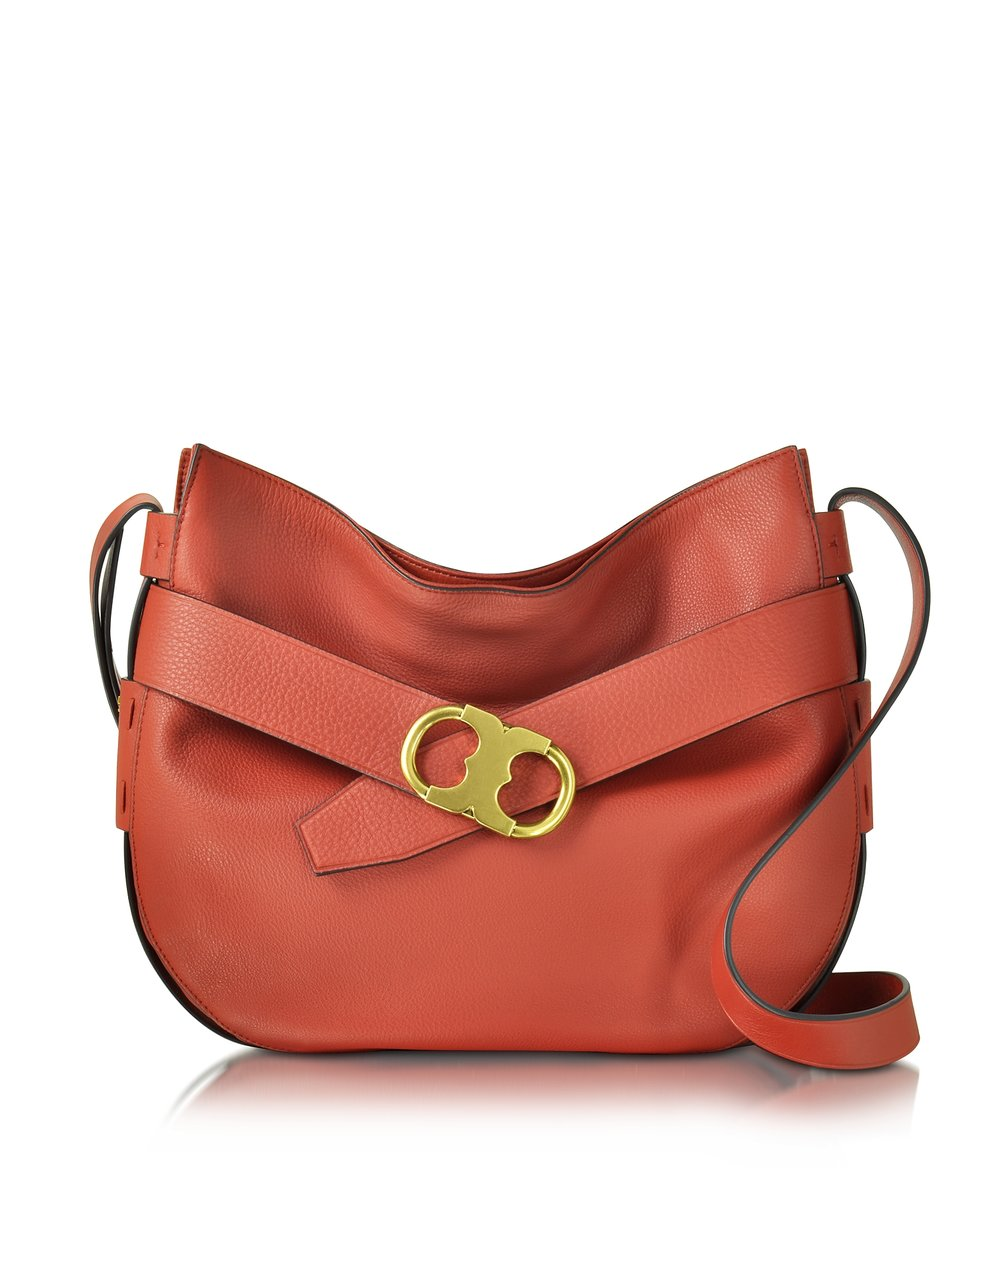 Tory Burch Gemini Link Leather Shoulder Bag